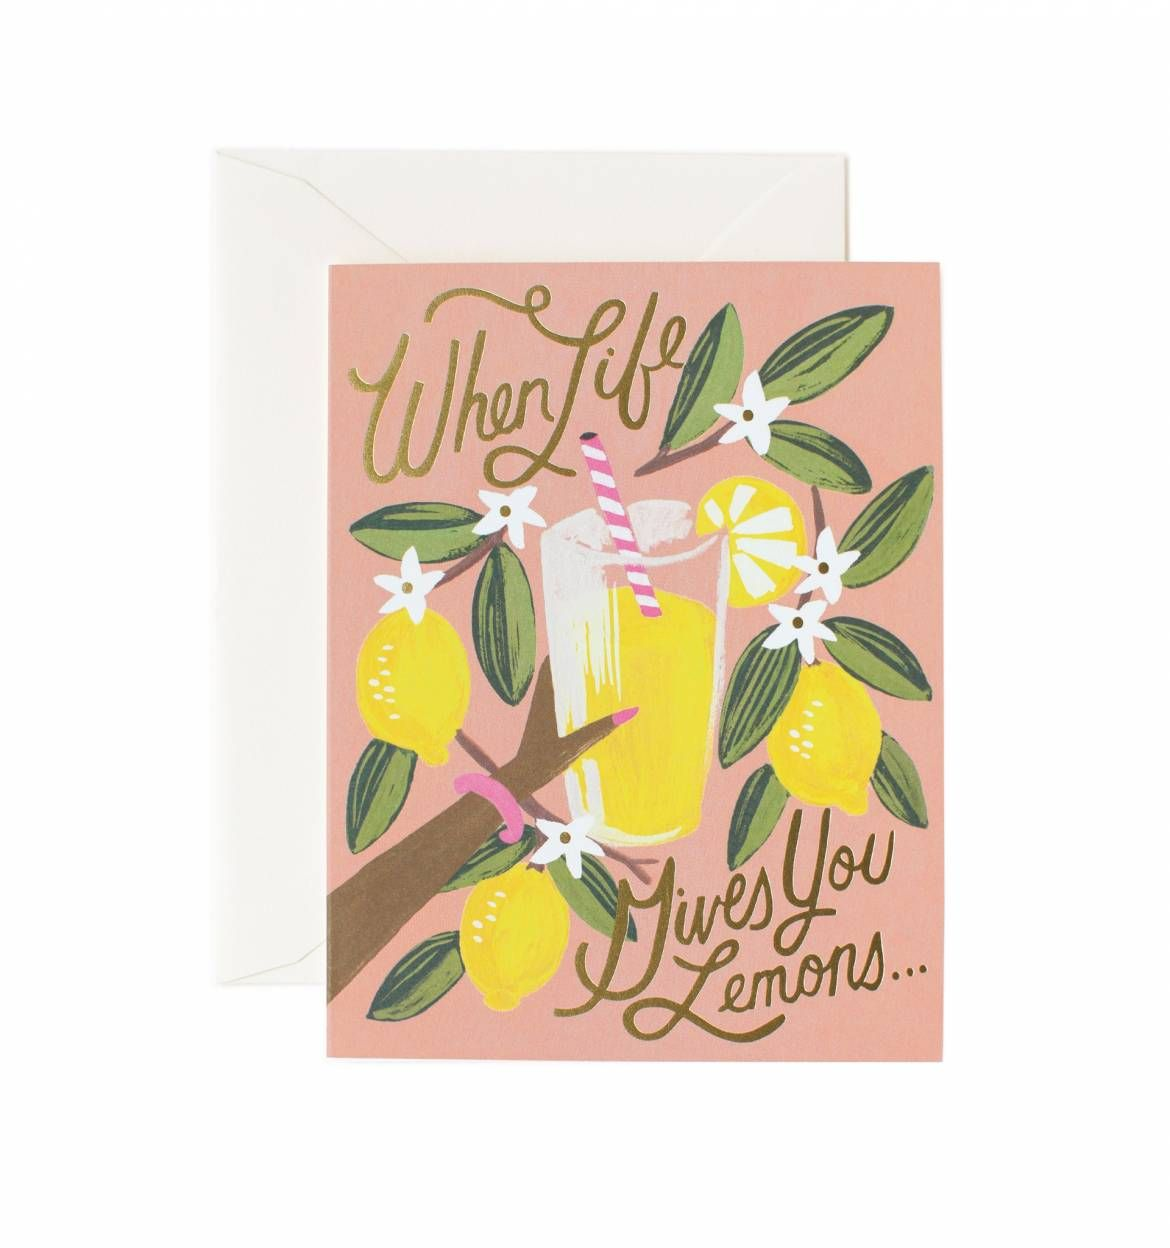 When Life Gives You Lemons Available As A Single Folded Card Or